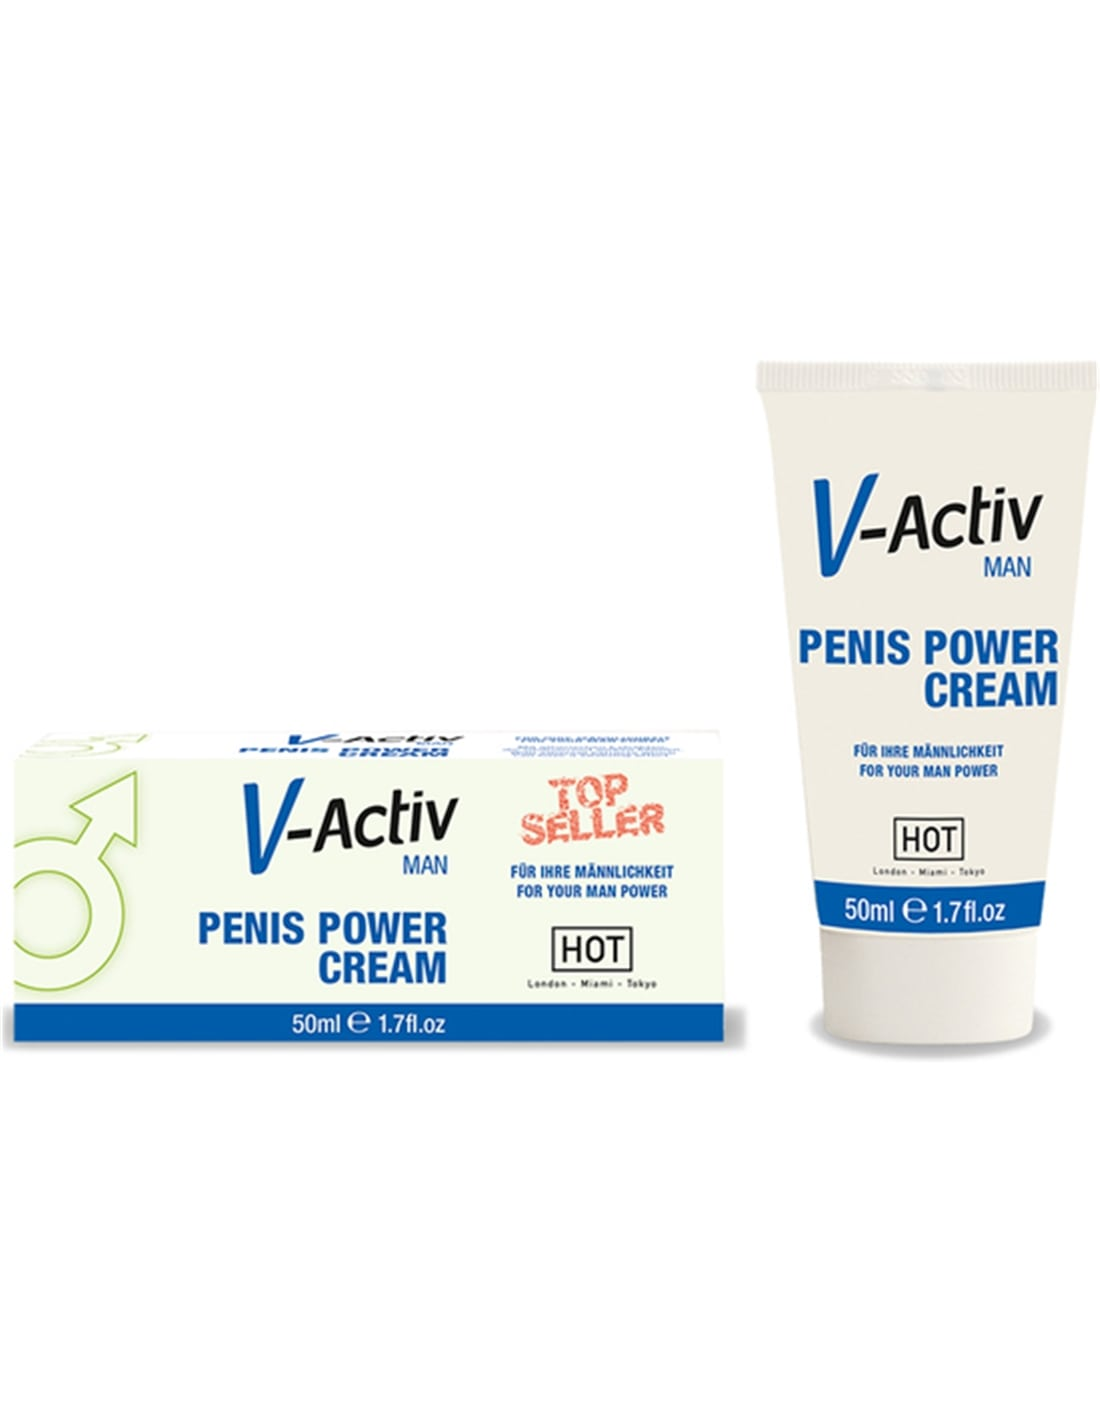 Creme Estimulante Penis Power Cream V-Activ - 50ml - PR2010300695